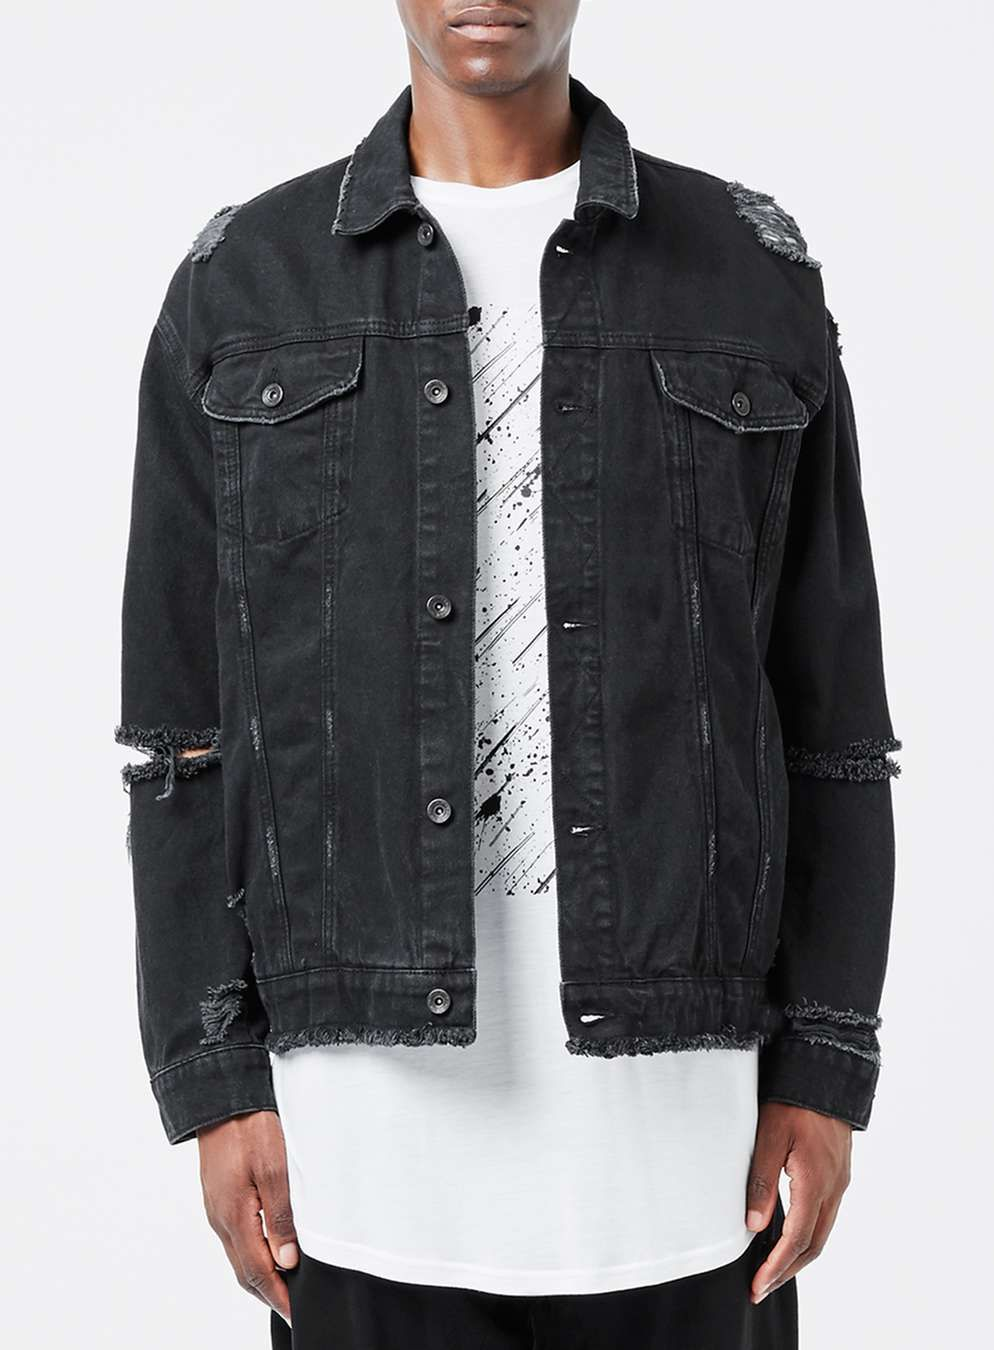 fee25120366c AAA Black Distressed Oversized Denim Jacket - Topman